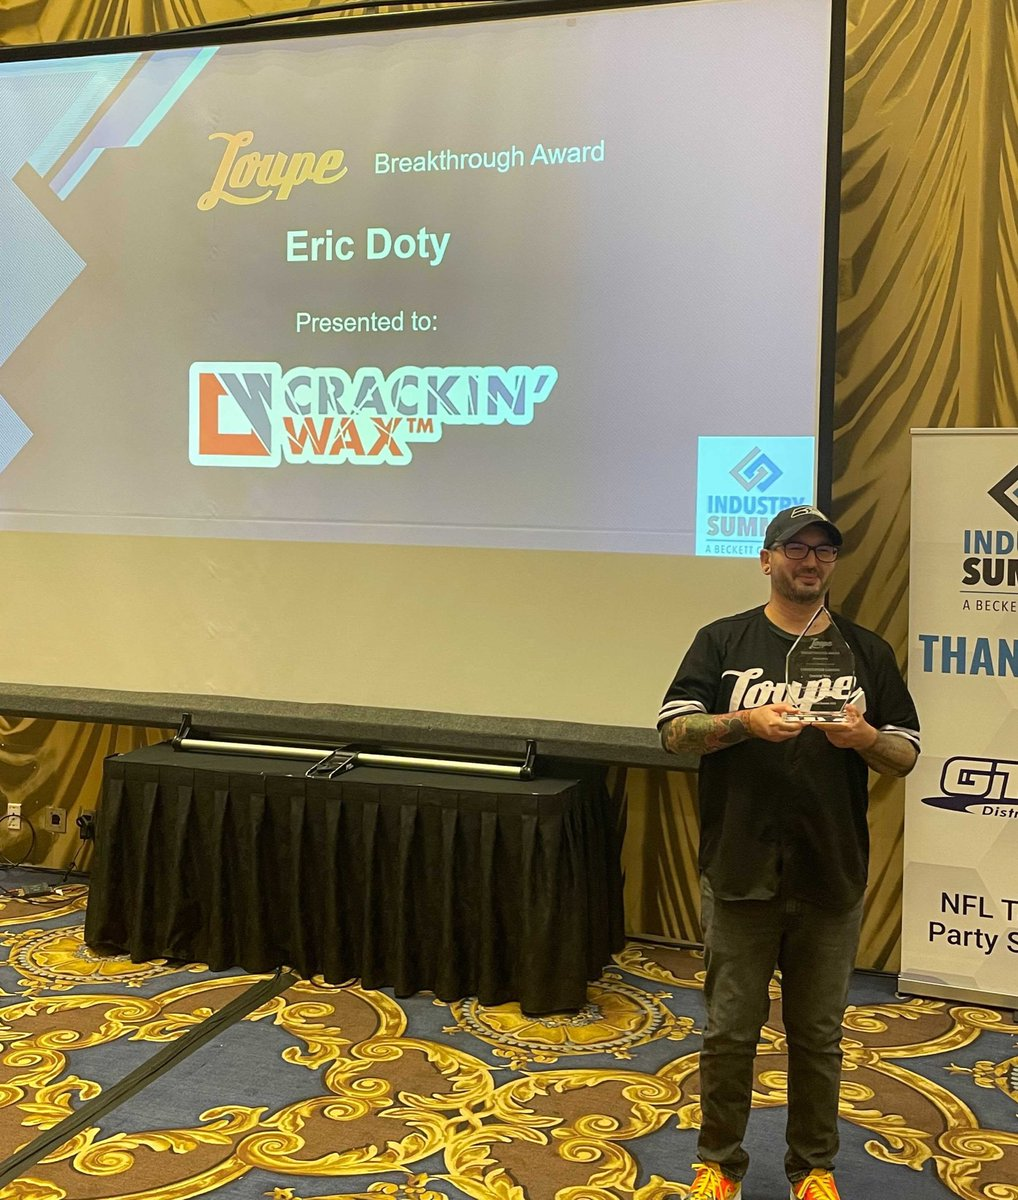 Thank you so much @beckettmedia for the opportunity to award the first @LoupeTheApp Breakthrough Award to @CrackinWax! We're excited to contribute $5000 in his name during our November Loupe Charity Week where all proceeds will be split between @ViolenceFreeMN and @MarlinsImpact.